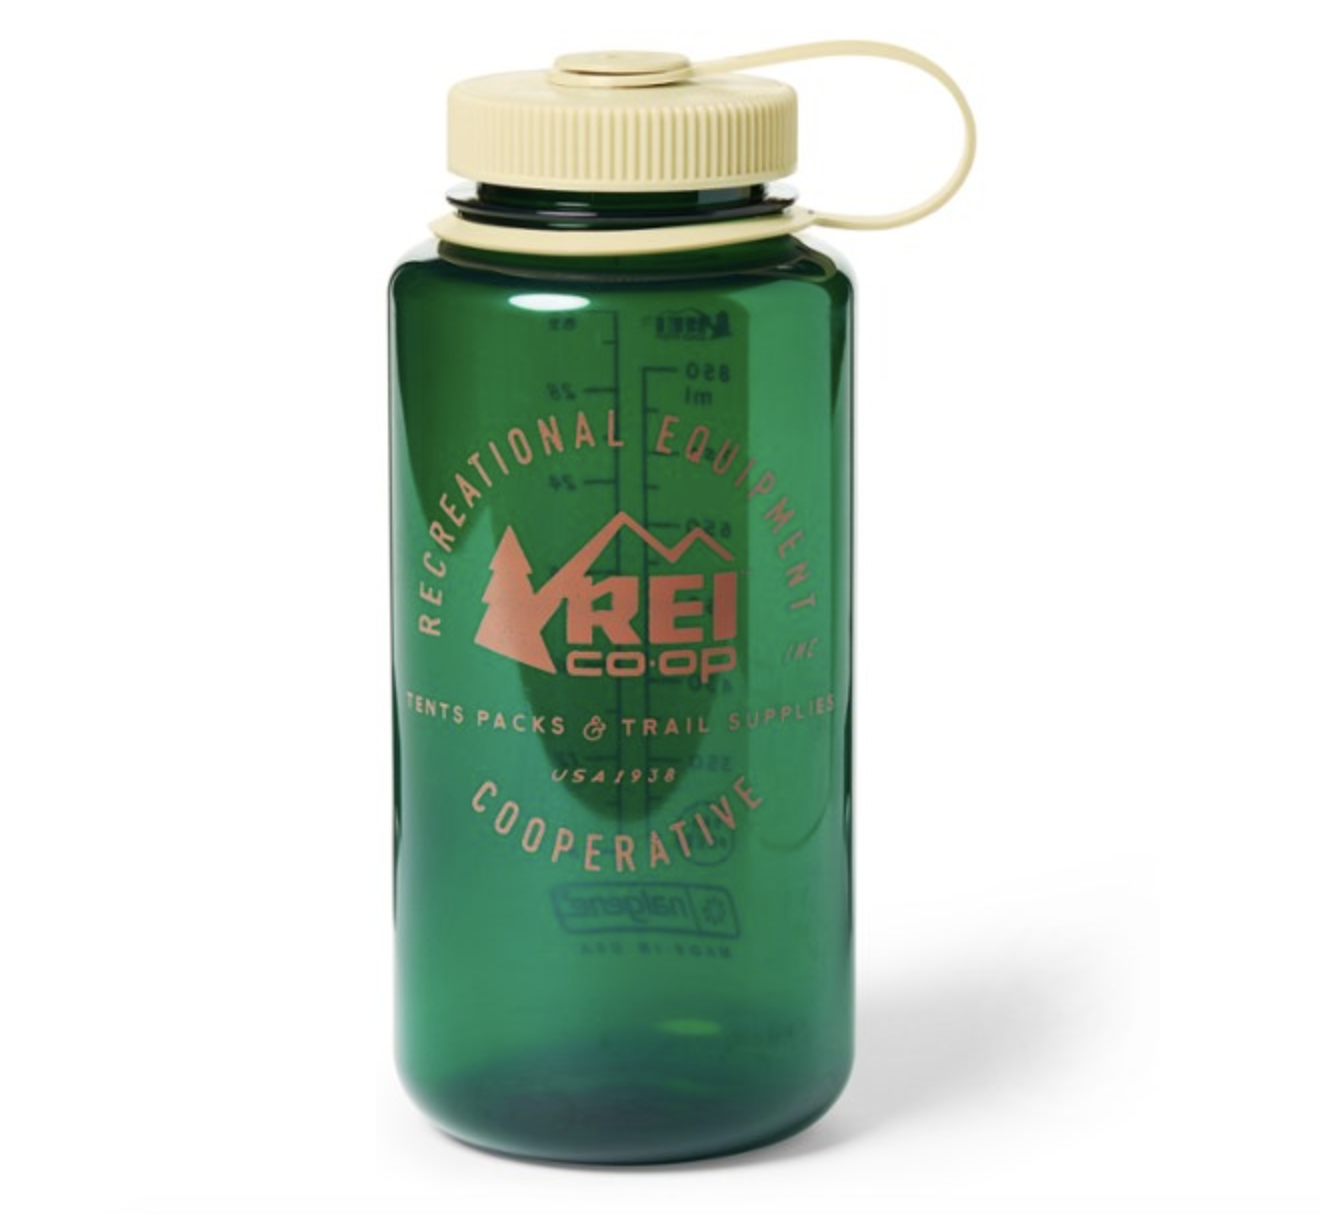 A green water bottle with a cream cap with the REI logo on it